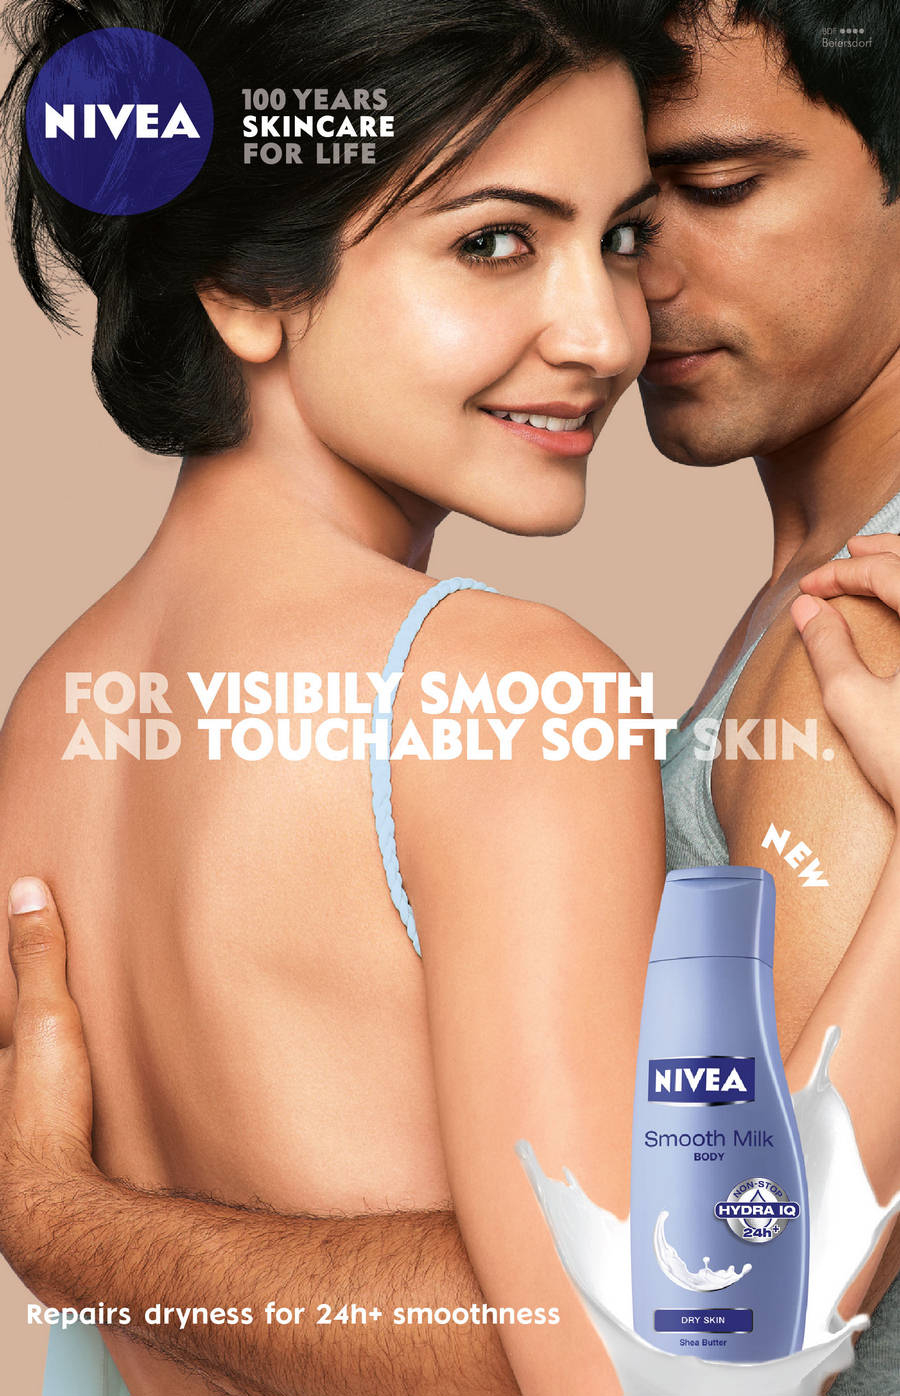 Nivea dating